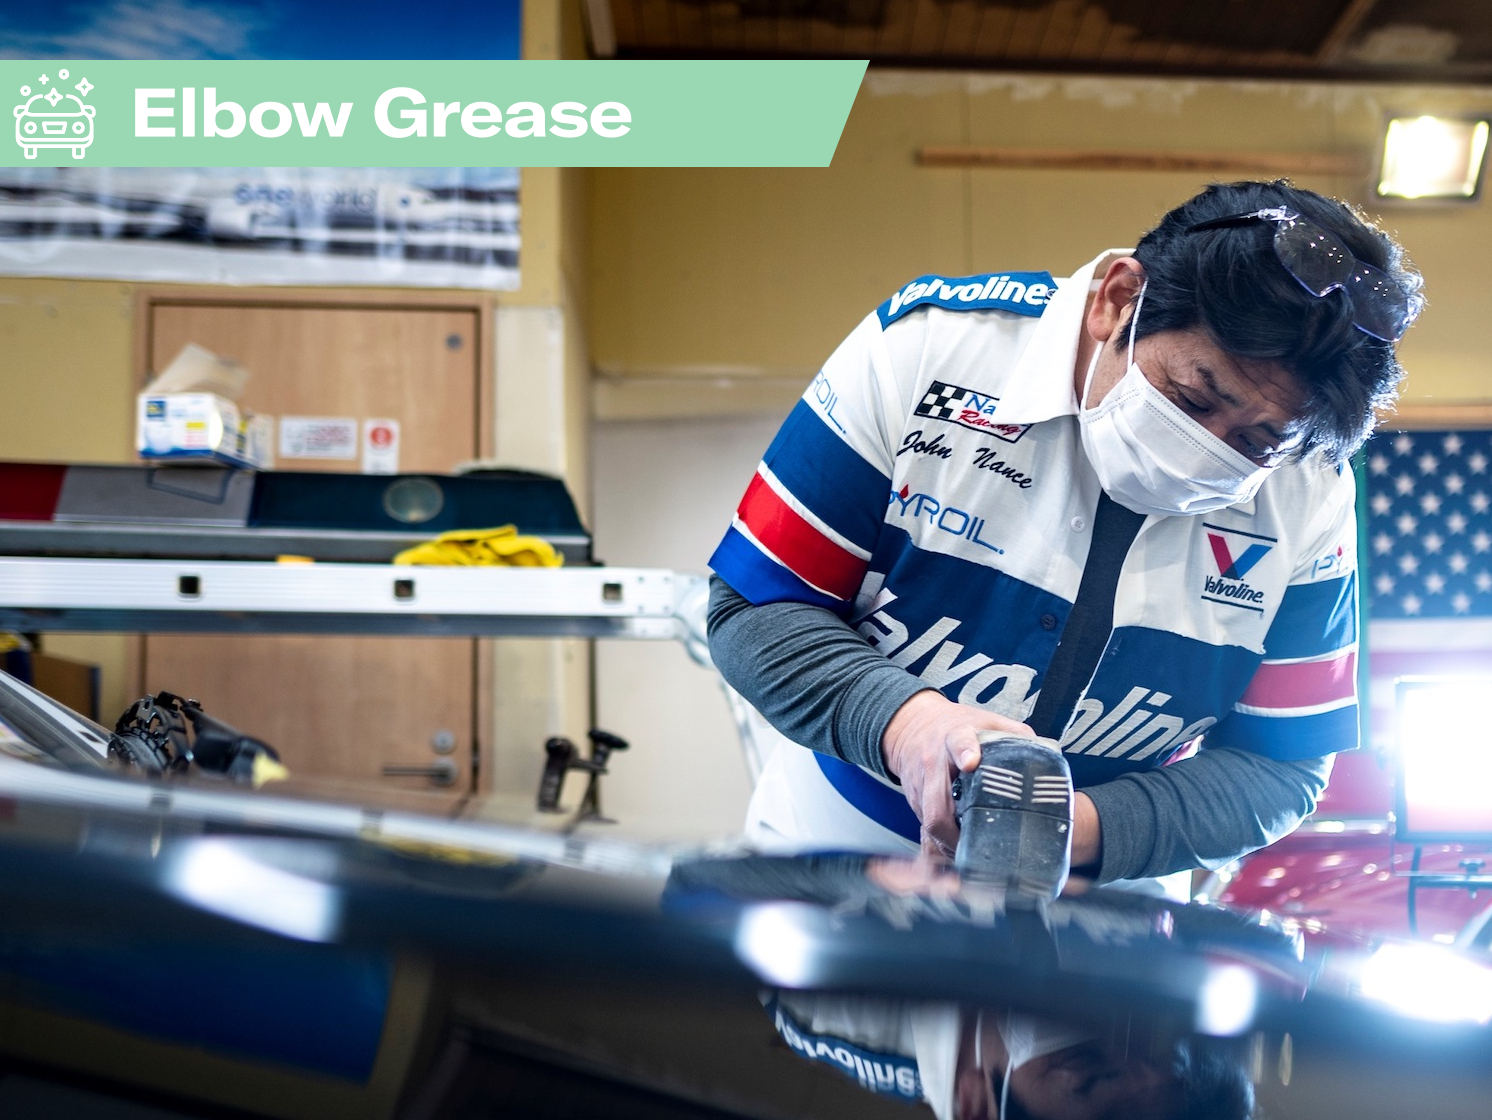 Elbow Grease: You've got a rotary polisher, so now what?